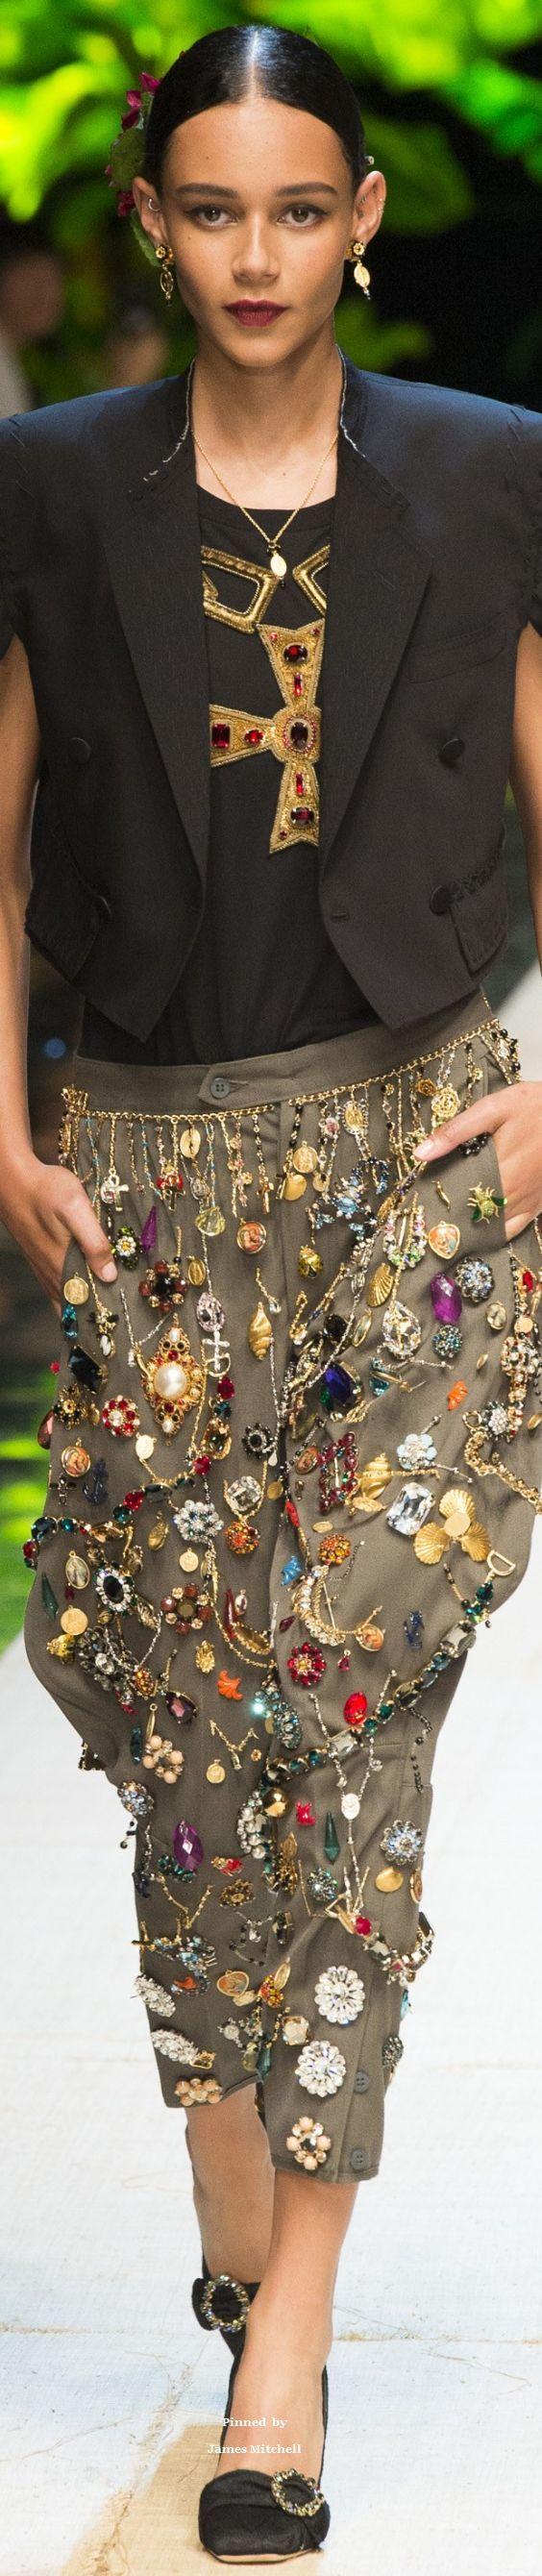 Dolce & Gabbana Spring 2017 Couture